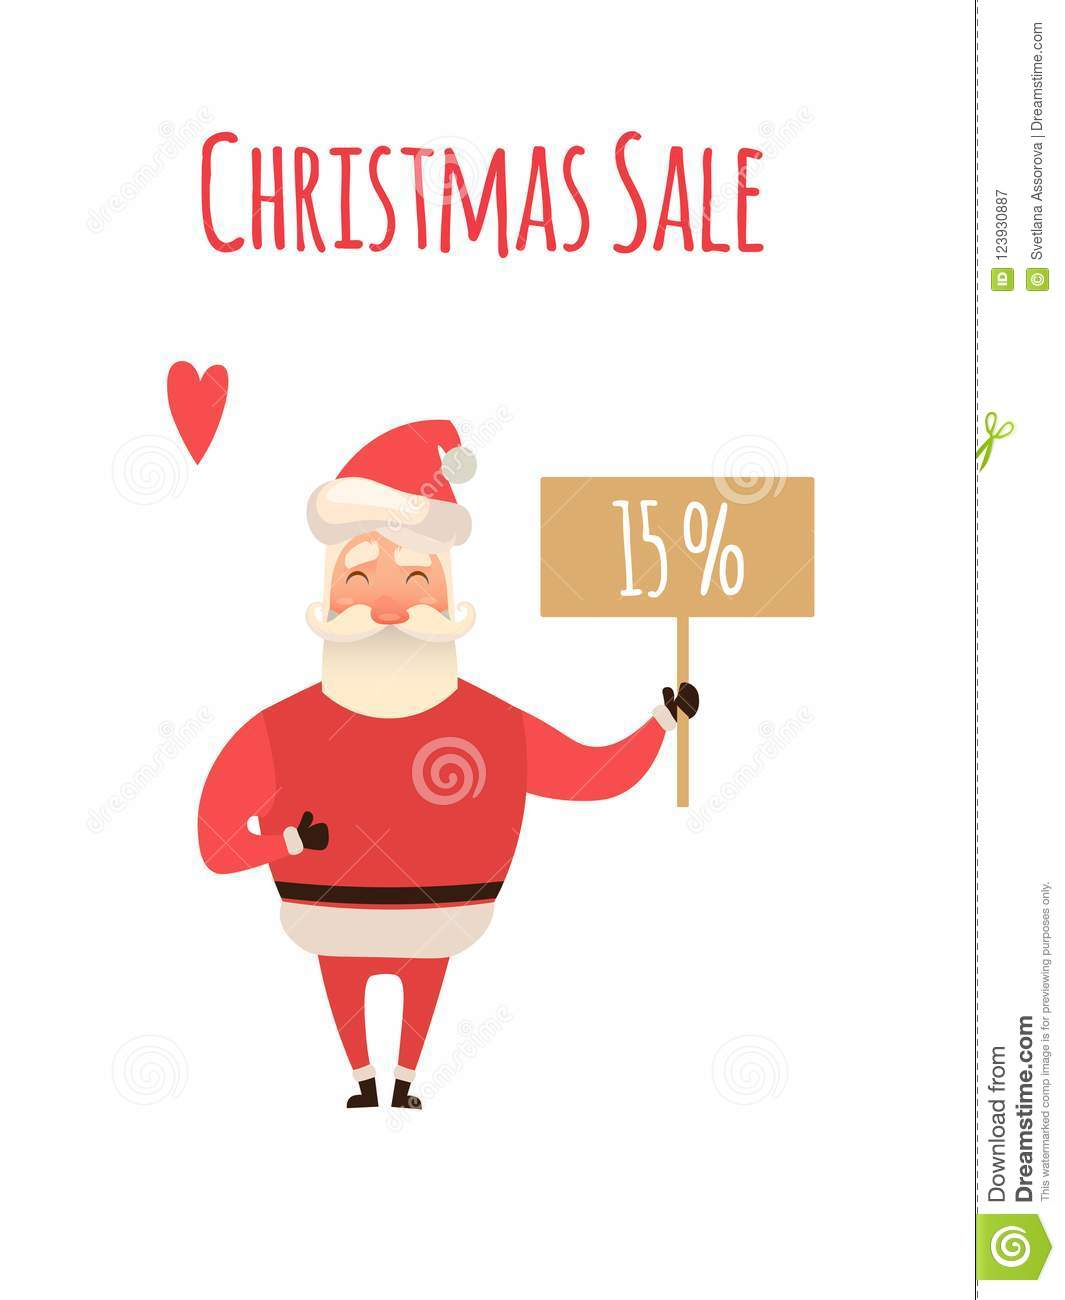 Santa Claus Cartoon Character Holding Christmas Sale Placard in white Background. Vector xmas Illustration for your web